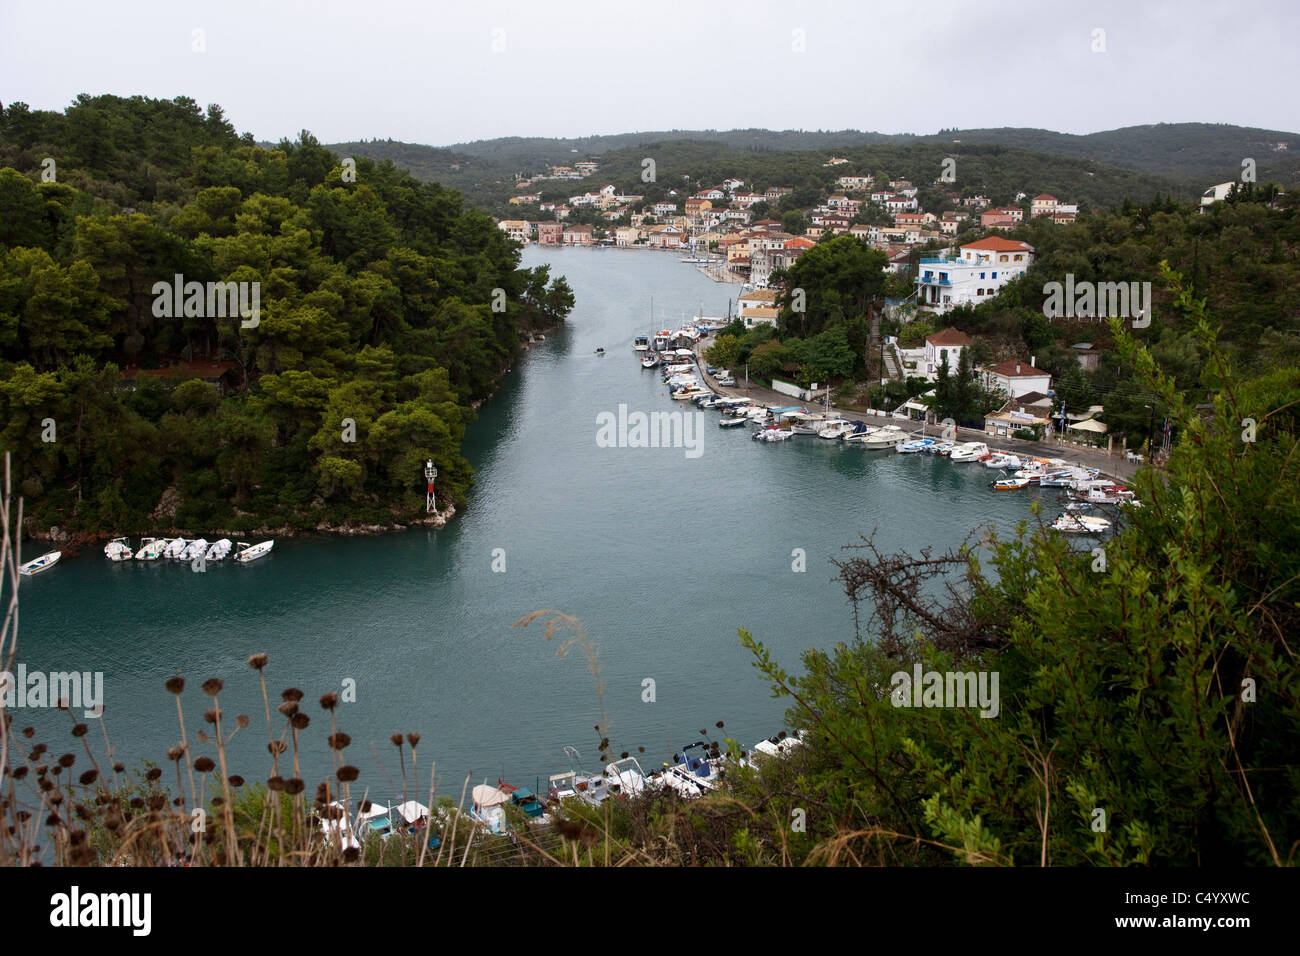 Gaios harbour on a rainy summer day. Paxos, Greece. - Stock Image